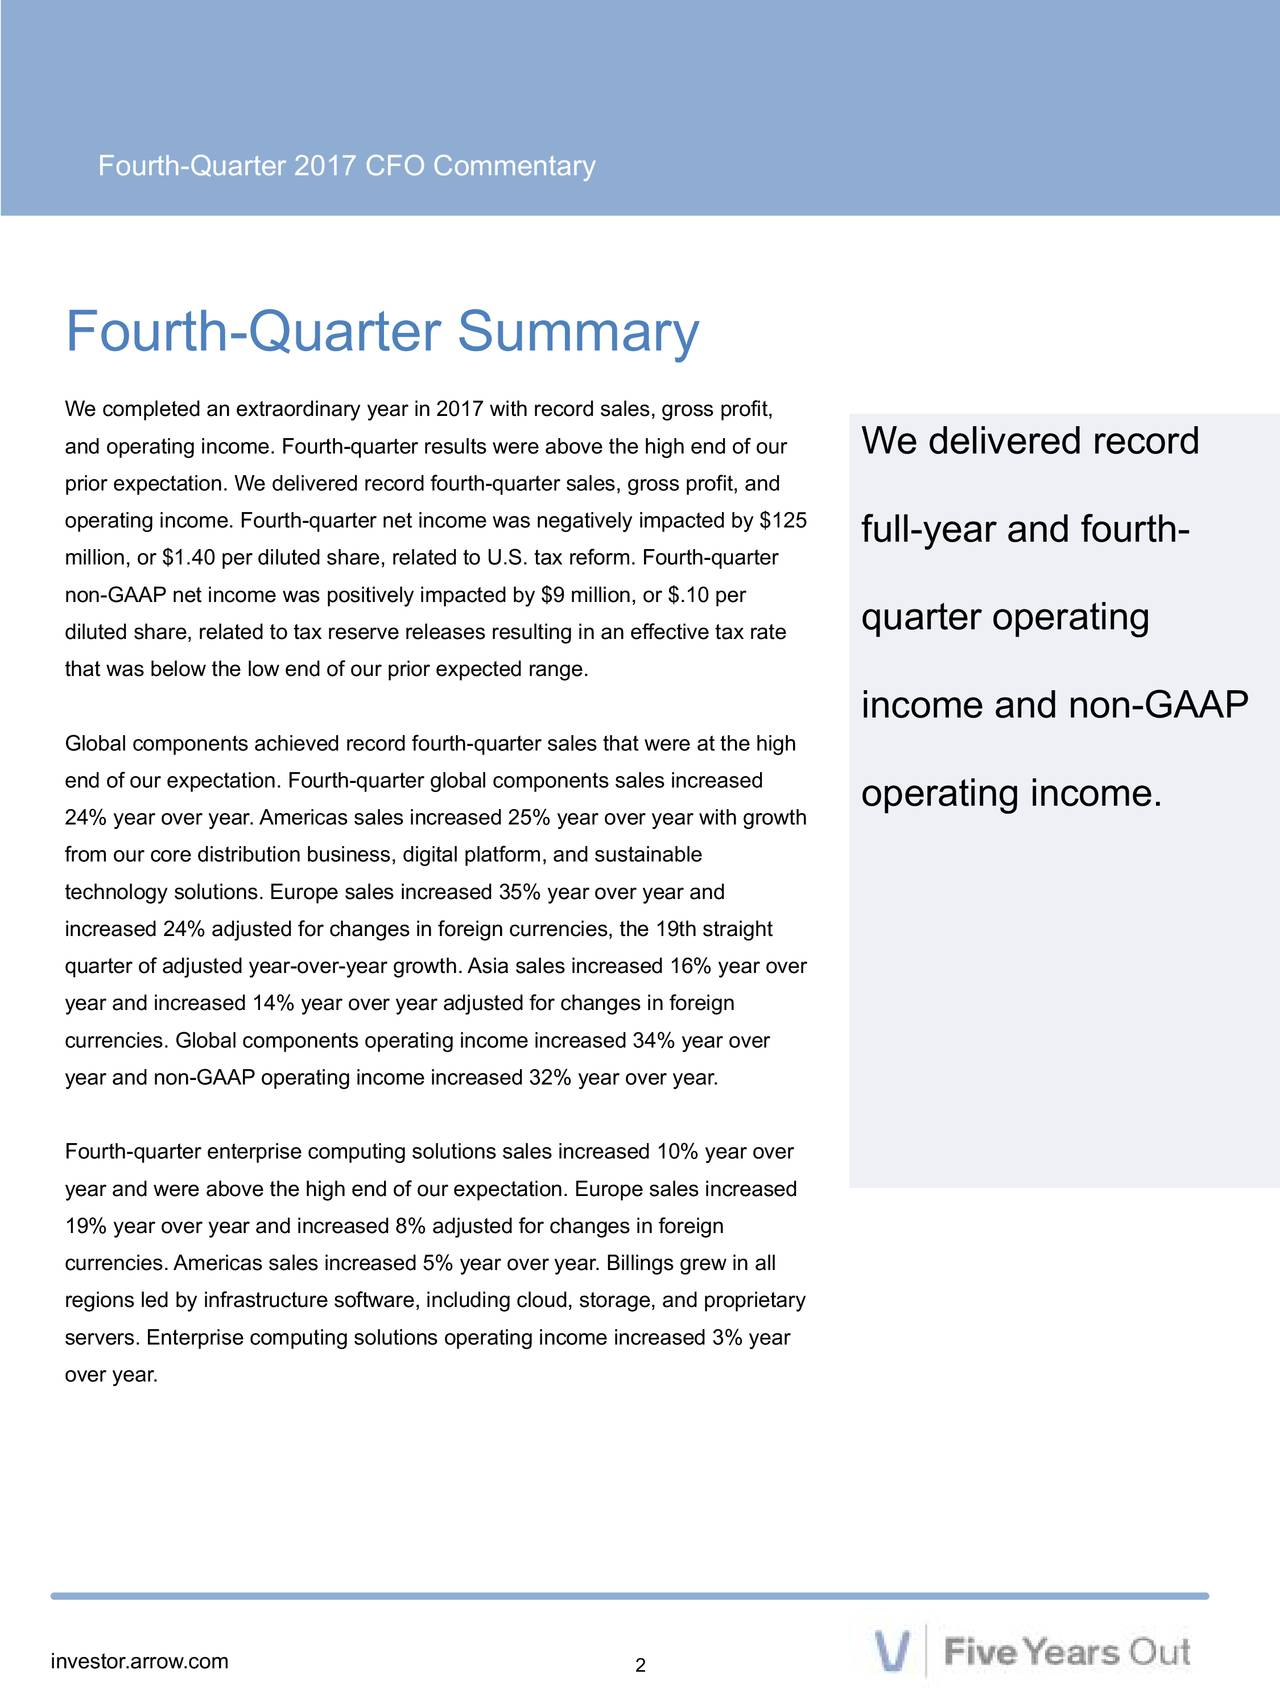 Fourth-Quarter Summary We completed an extraordinary year in 2017 with record sales, gross profit, and operating income. Fourth-quarter results were above the high end of We delivered record prior expectation. We delivered record fourth-quarter sales, gross profit, and operating income. Fourth-quarter net income was negatively impacted by $125 million, or $1.40 per diluted share, related to U.S. tax reform. Fourth-quarterar and fourth- non-GAAP net income was positively impacted by $9 million, or $.10 per diluted share, related to tax reserve releases resulting in an effective tax rateperating that was below the low end of our prior expected range. income and non-GAAP Global components achieved record fourth-quarter sales that were at the high end of our expectation. Fourth-quarter global components sales increased operating income. 24% year over year. Americas sales increased 25% year over year with growth from our core distribution business, digital platform, and sustainable technology solutions. Europe sales increased 35% year over year and increased 24% adjusted for changes in foreign currencies, the 19th straight quarter of adjusted year-over-year growth. Asia sales increased 16% year over year and increased 14% year over year adjusted for changes in foreign currencies. Global components operating income increased 34% year over year and non-GAAP operating income increased 32% year over year. Fourth-quarter enterprise computing solutions sales increased 10% year over year and were above the high end of our expectation. Europe sales increased 19% year over year and increased 8% adjusted for changes in foreign currencies. Americas sales increased 5% year over year. Billings grew in all regions led by infrastructure software, including cloud, storage, and proprietary servers. Enterprise computing solutions operating income increased 3% year over year. investor.arrow.com 2